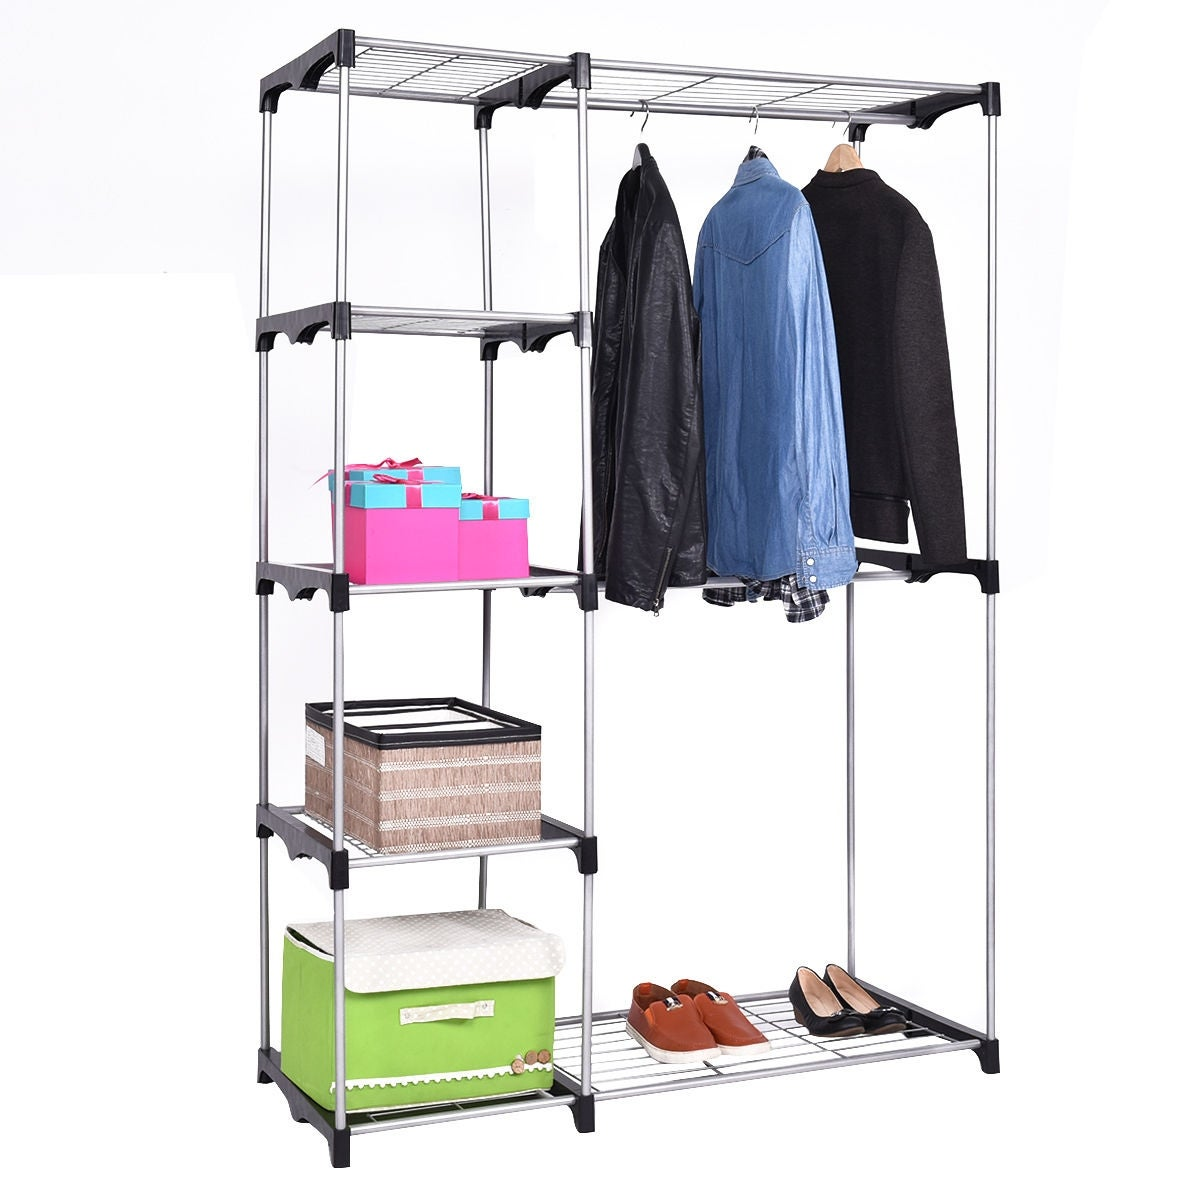 Charming Shop Costway Closet Organizer Storage Rack Portable Wardrobe Garment Hanger Double  Rod Shelf   As Pic   Free Shipping Today   Overstock.com   16899204